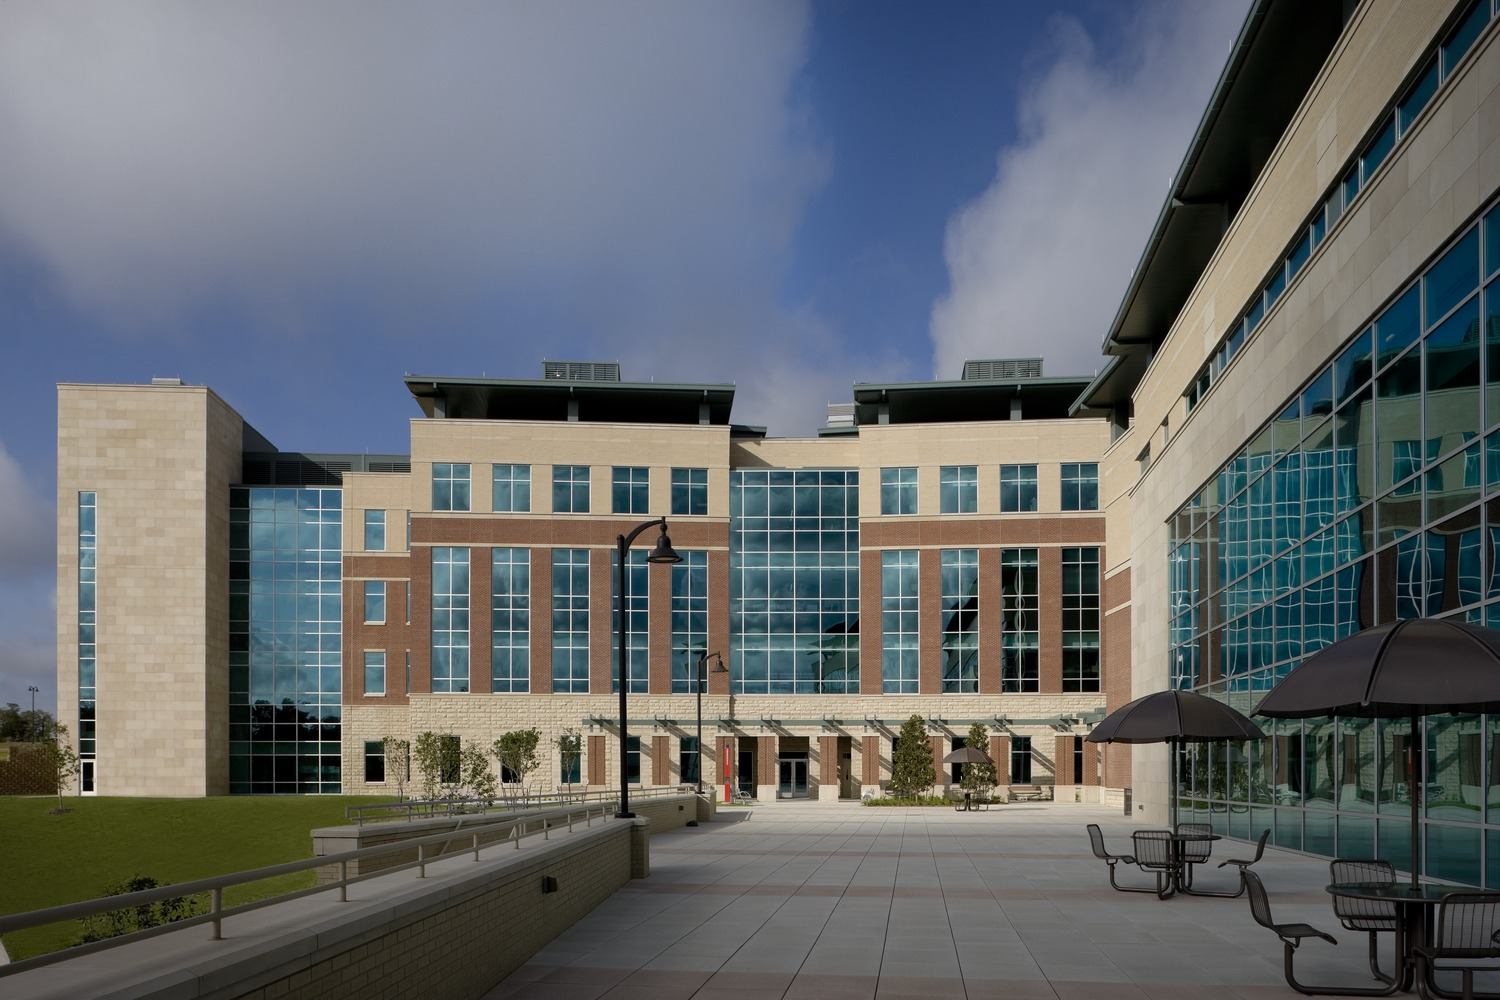 Texas A&M Health Science Center – Medical Research Education Building,